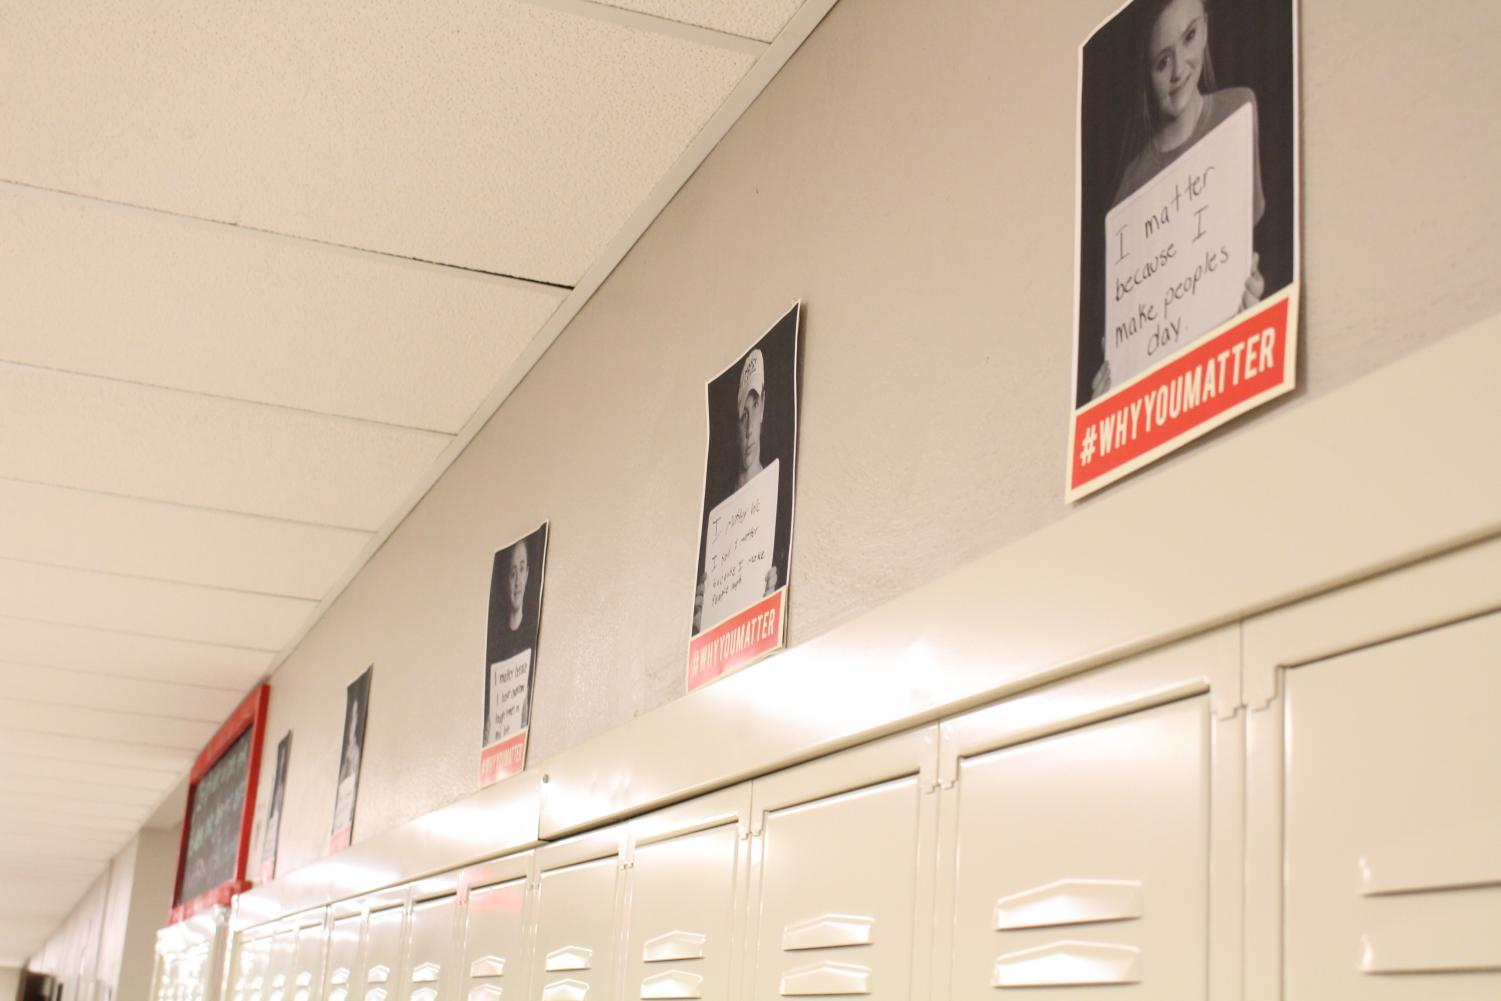 Each student's individual picture hangs in the halls, showing what makes them important and unique.